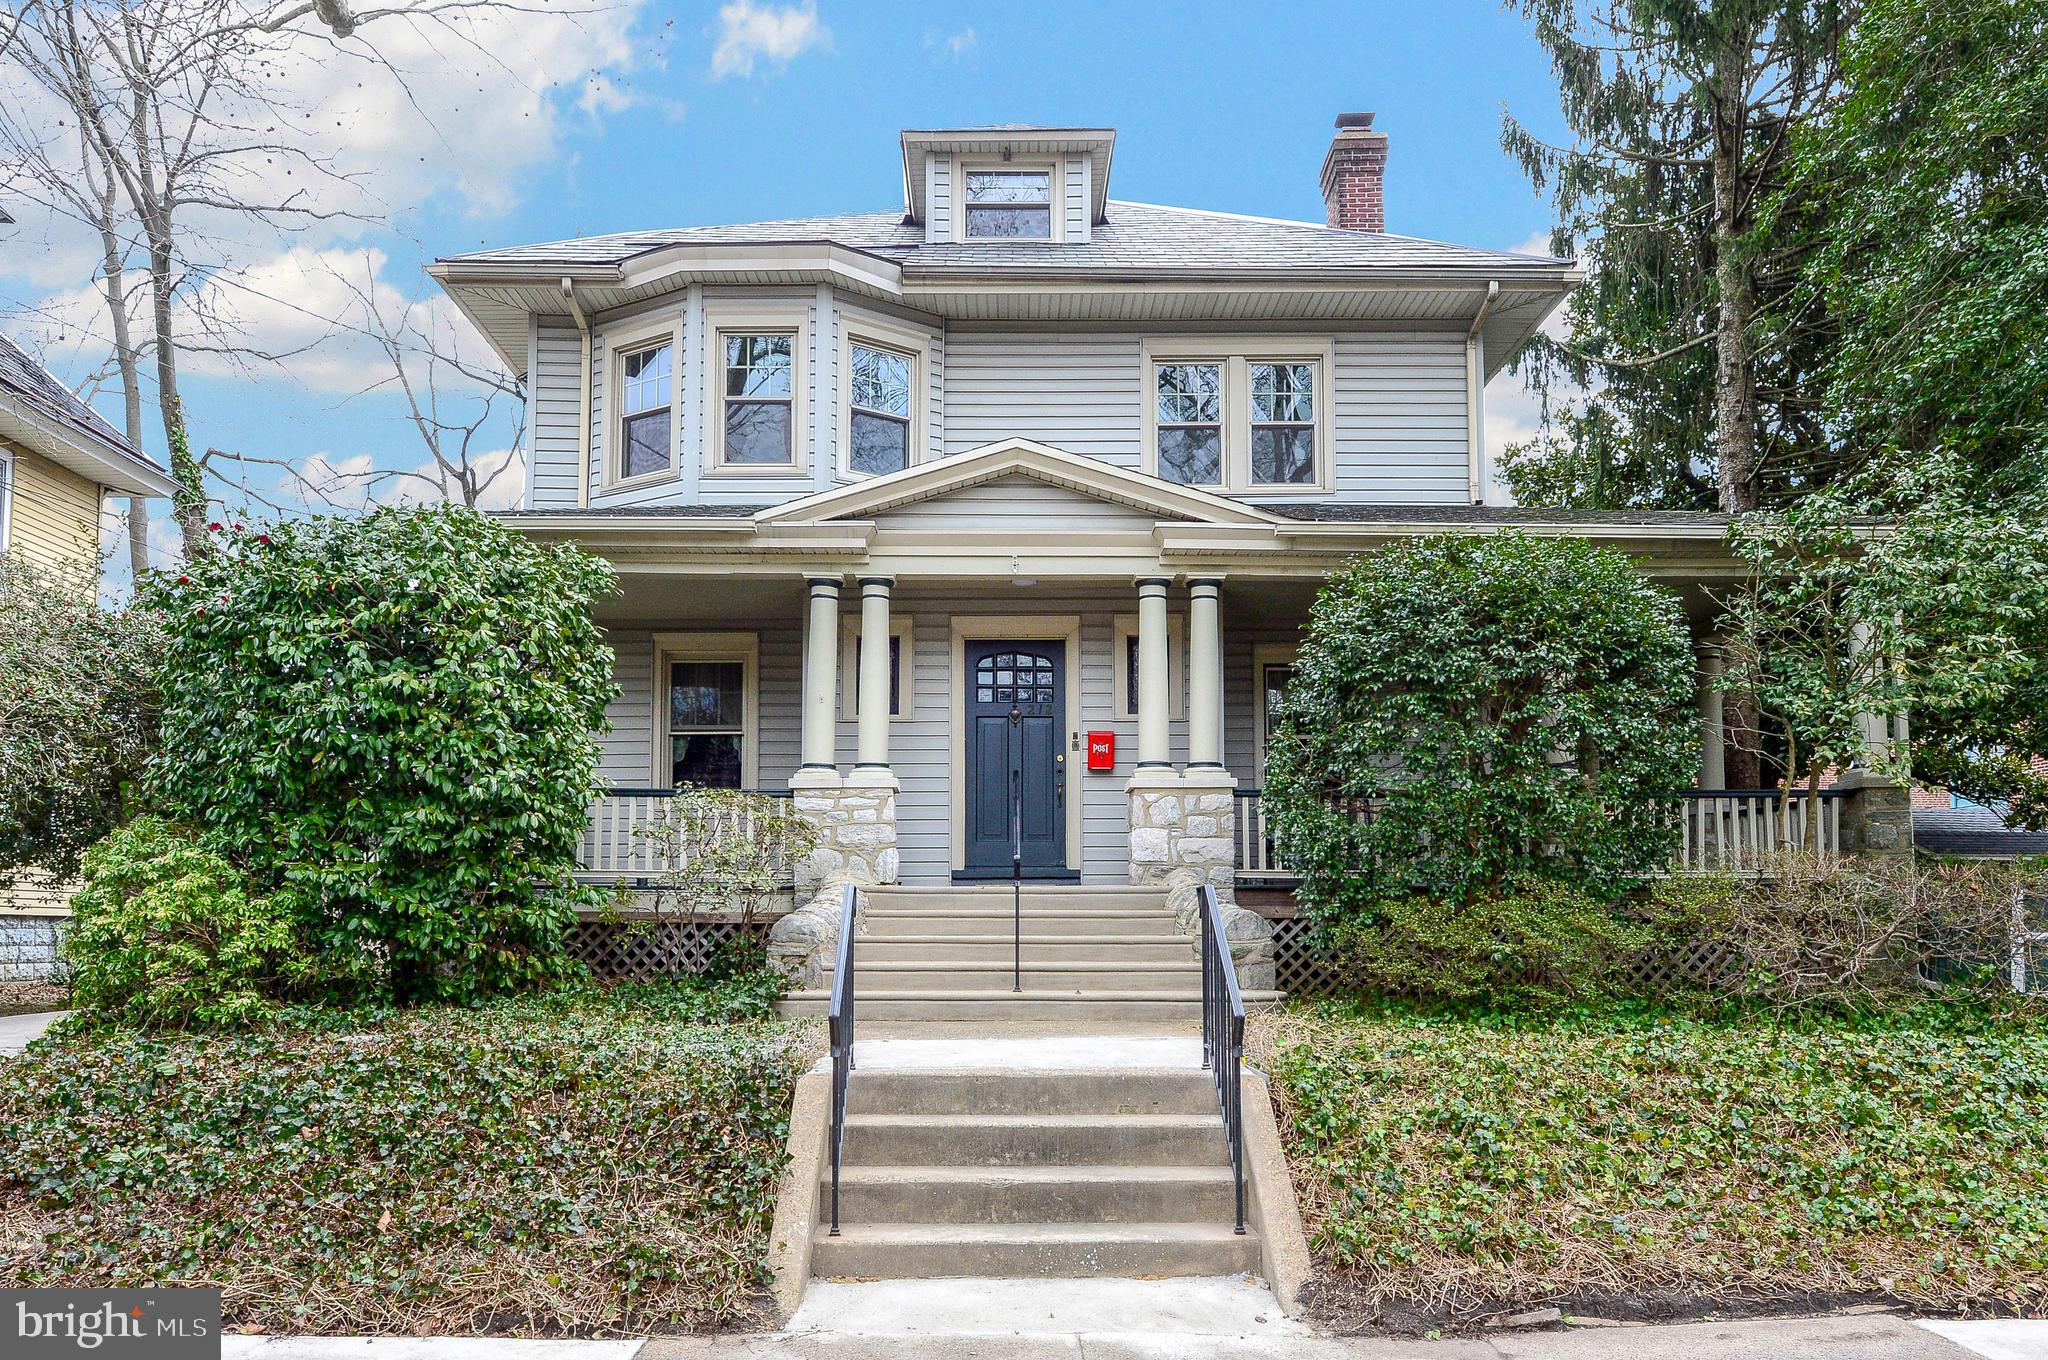 212 LAKEVIEW, COLLINGSWOOD, NJ 08108